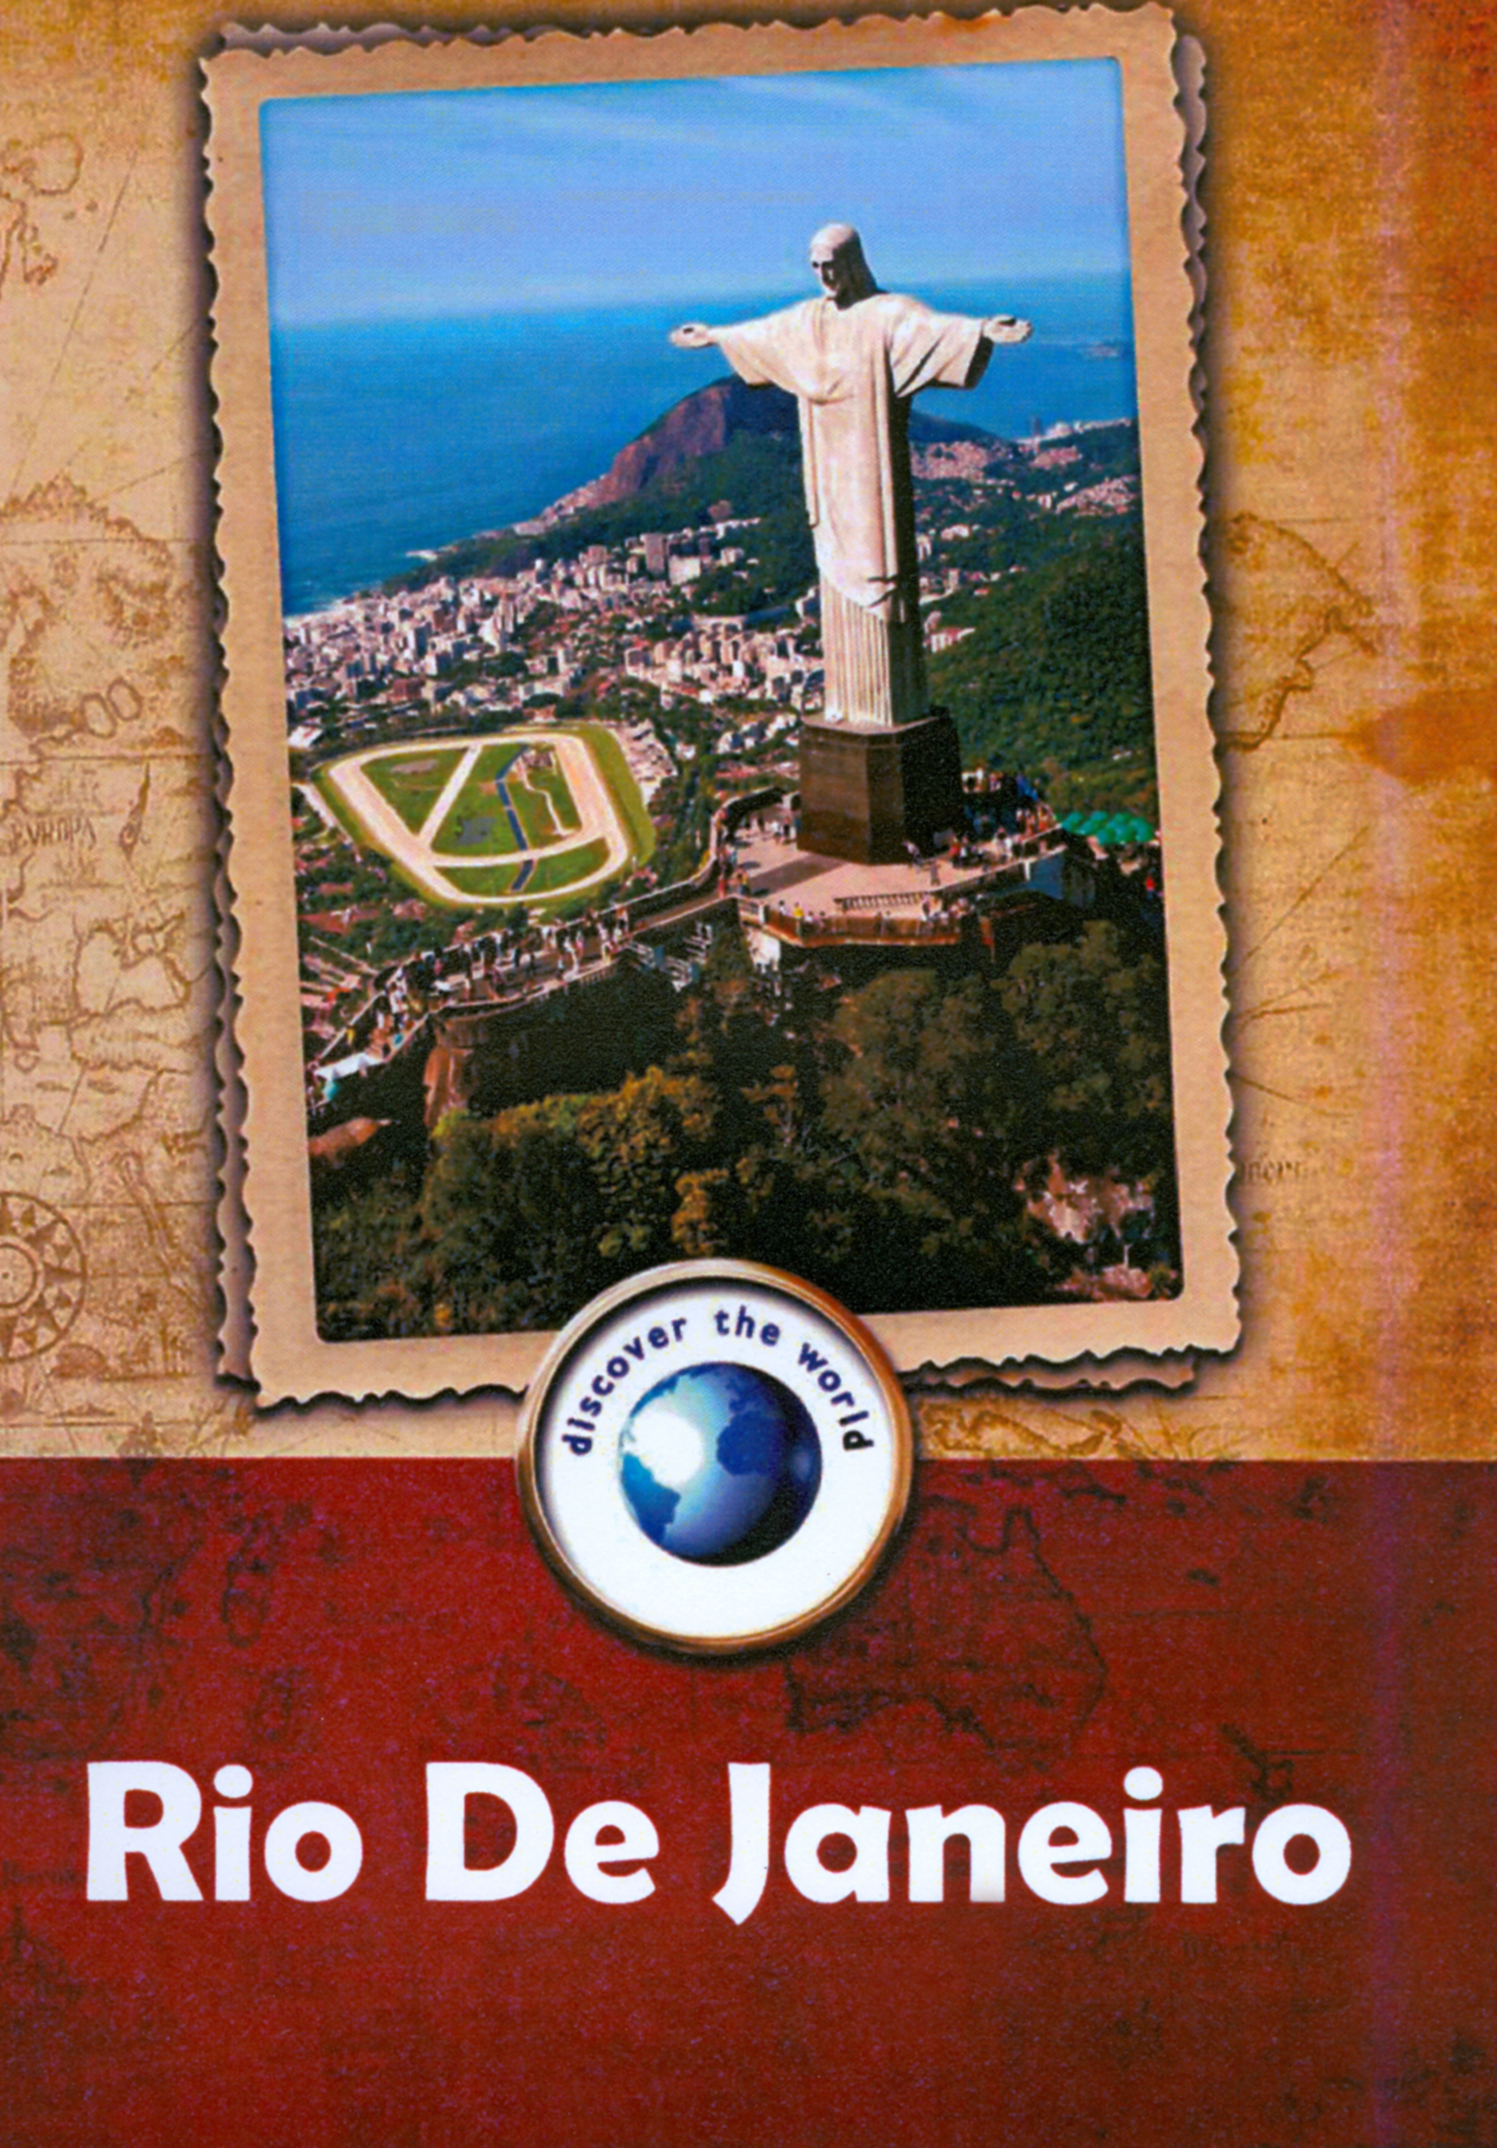 Discover the World: Rio de Janiero